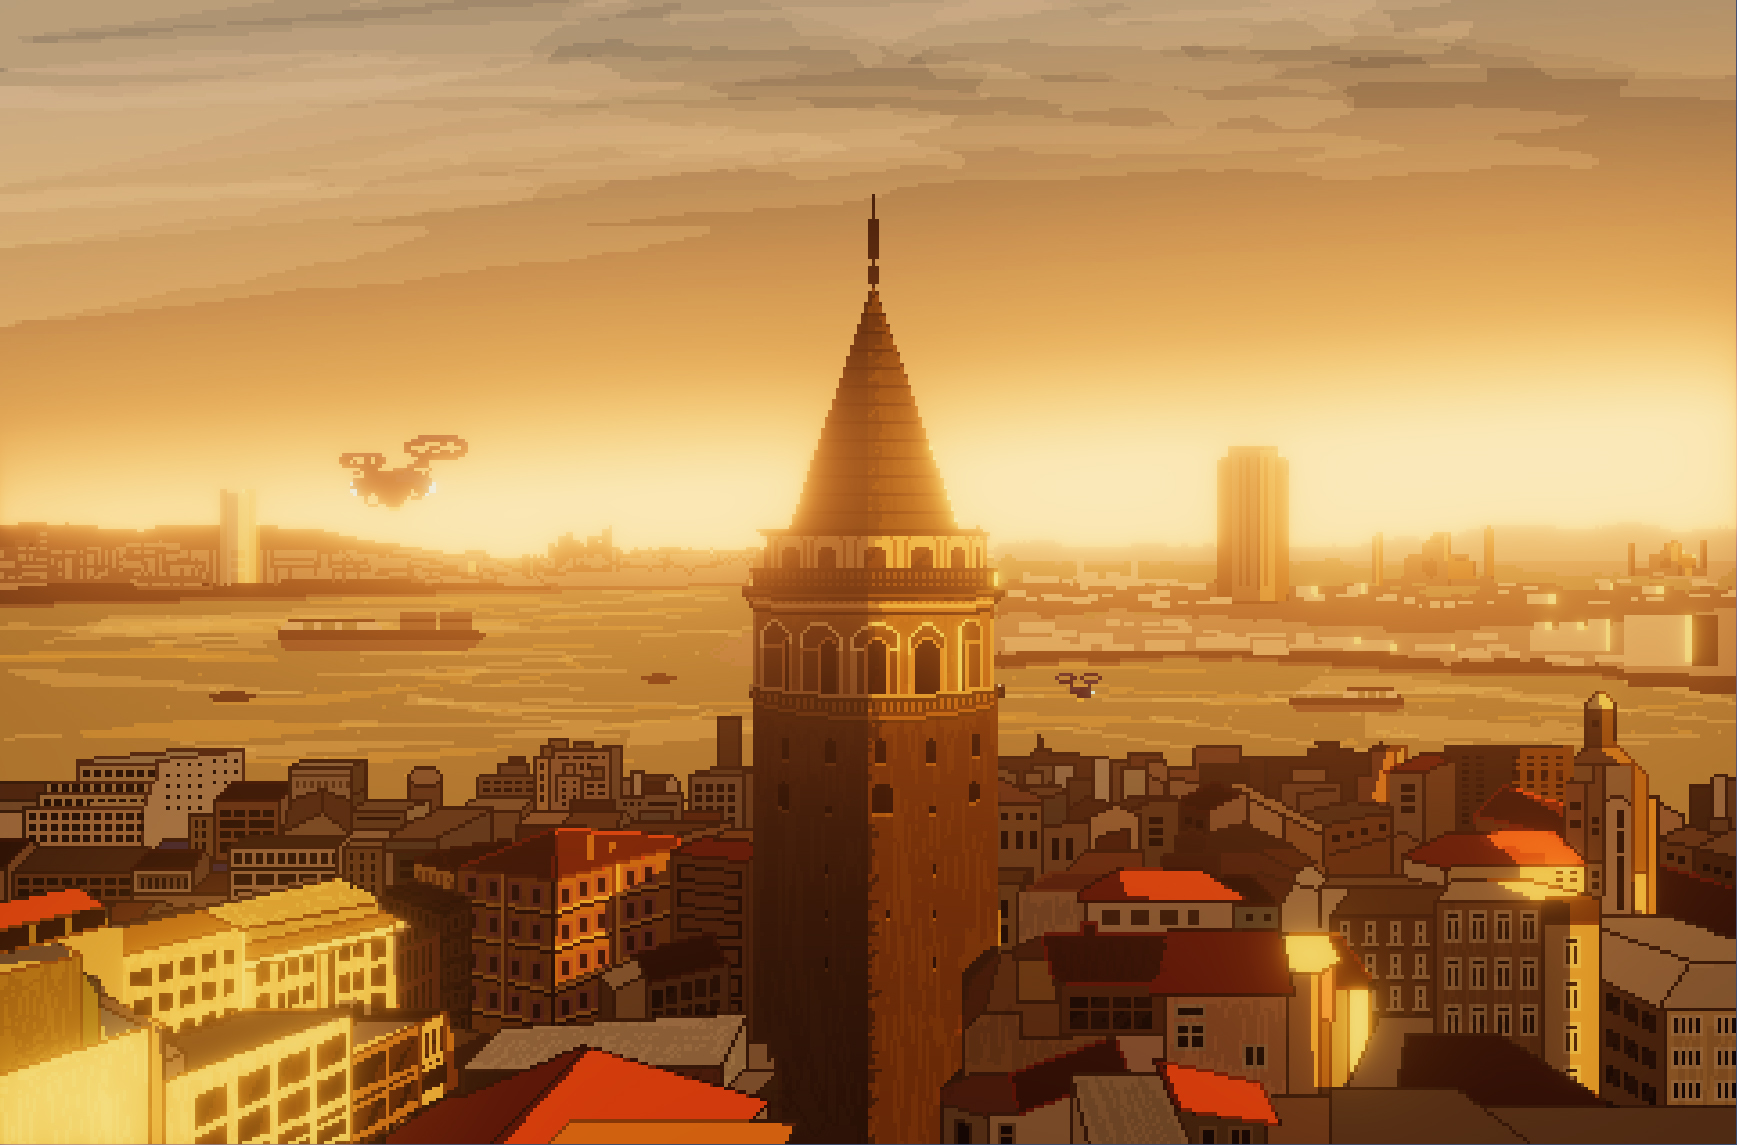 ...and Istanbul